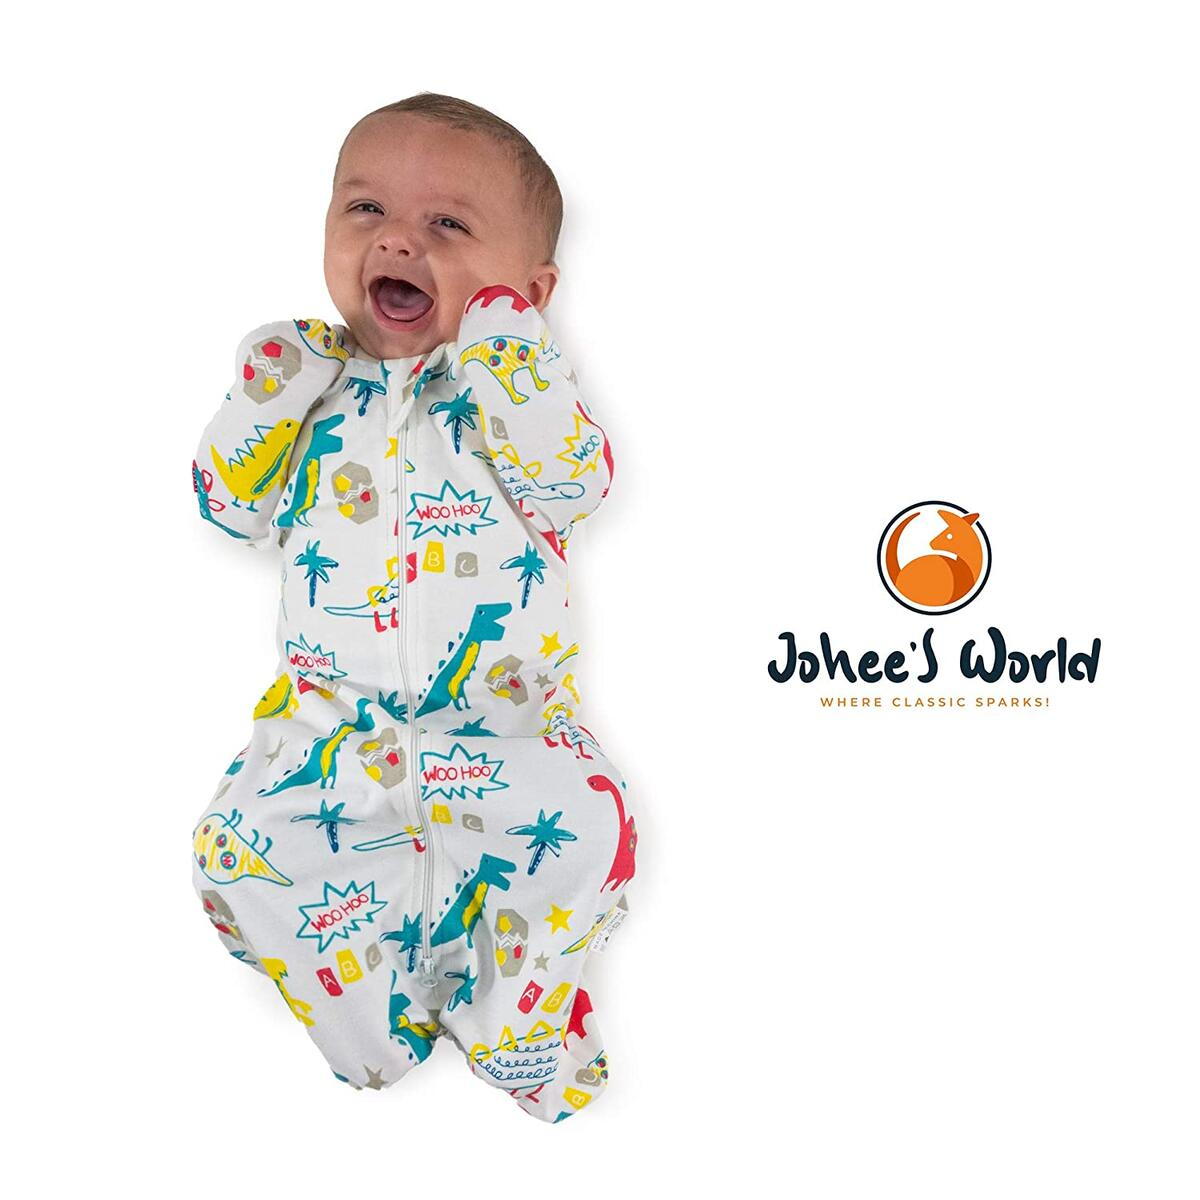 Roll over image to zoom in Johee's World 5pc.Cotton Swaddle Blankets Set with Infant Mittens, Hat, Pacifier-Self-Soothing Newborn Infant Snug Fit Newborn Swaddle Calms Startle Reflex, Baby Swaddle Improves Sleep(0-3 M)